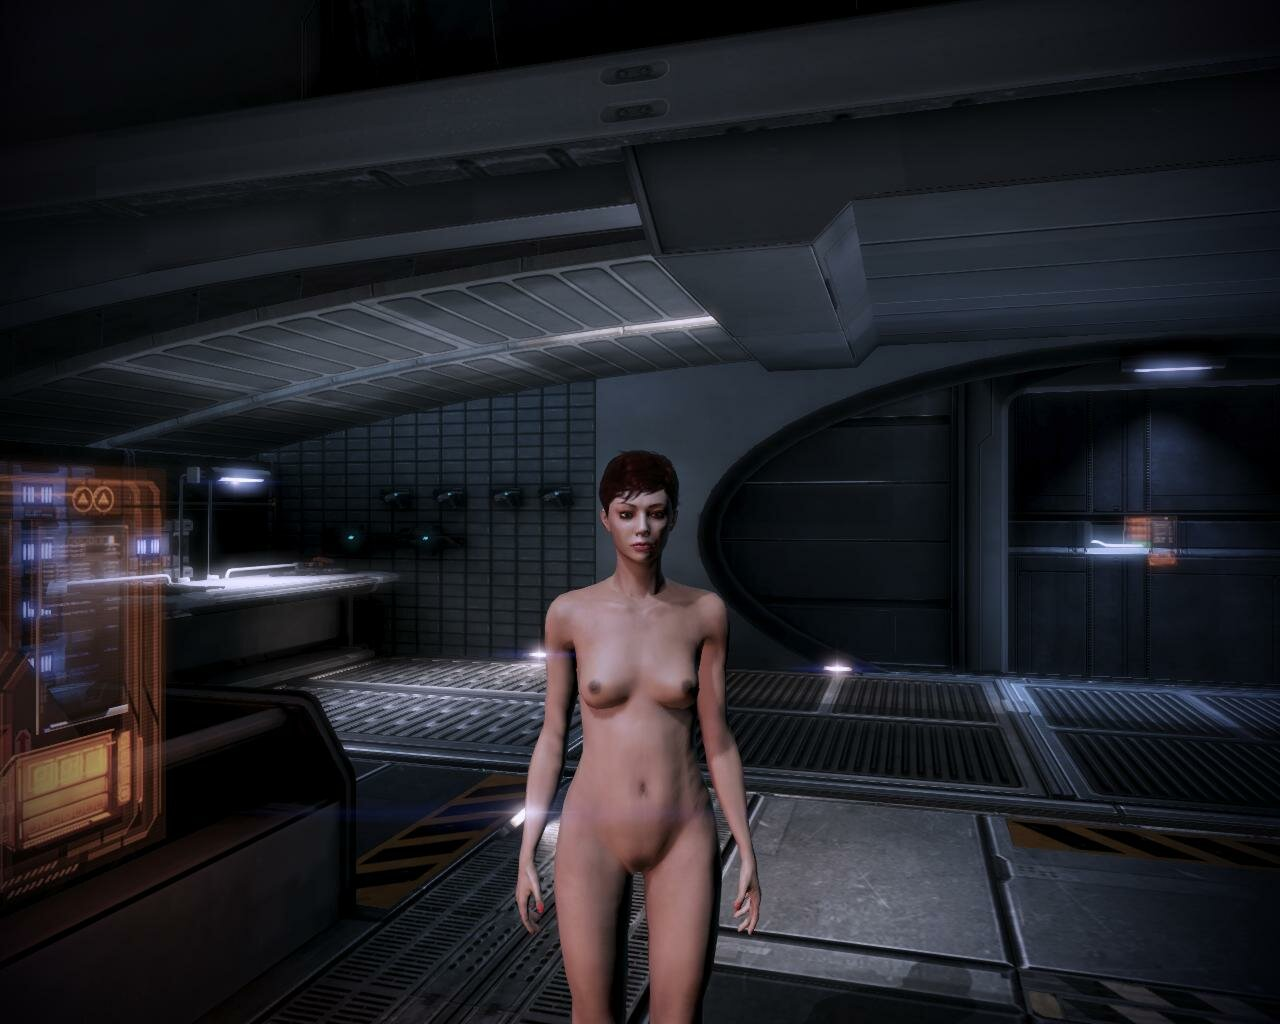 Mass effect 3 nude mode nude tube